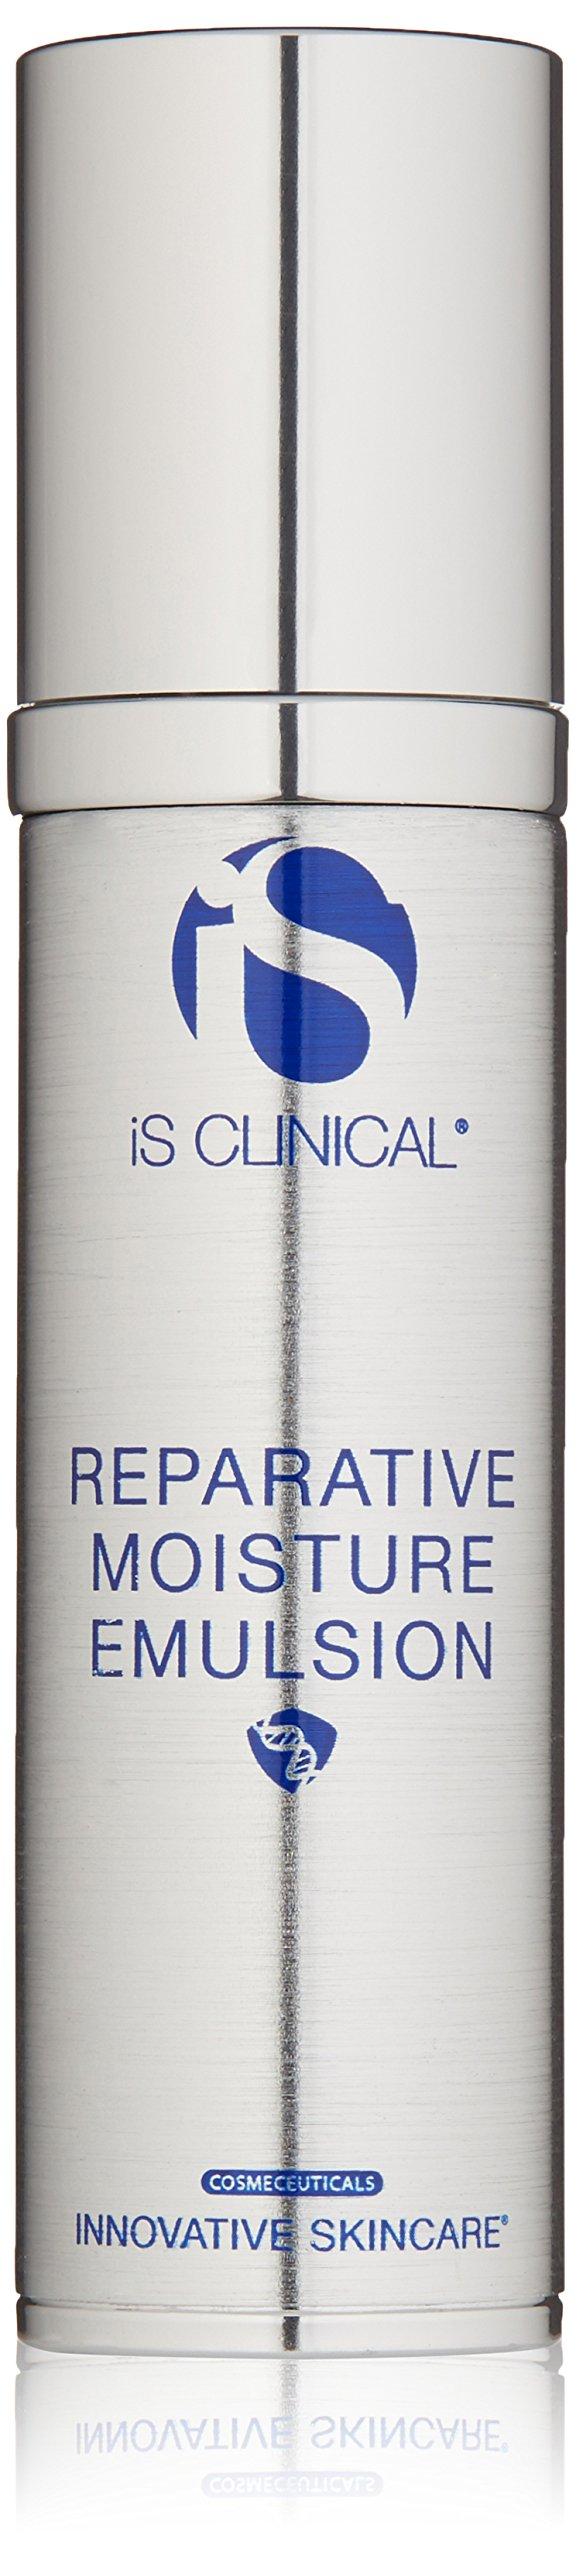 iS CLINICAL  Reparative Moisture Emulsion, 1.7  Oz by iS CLINICAL (Image #1)